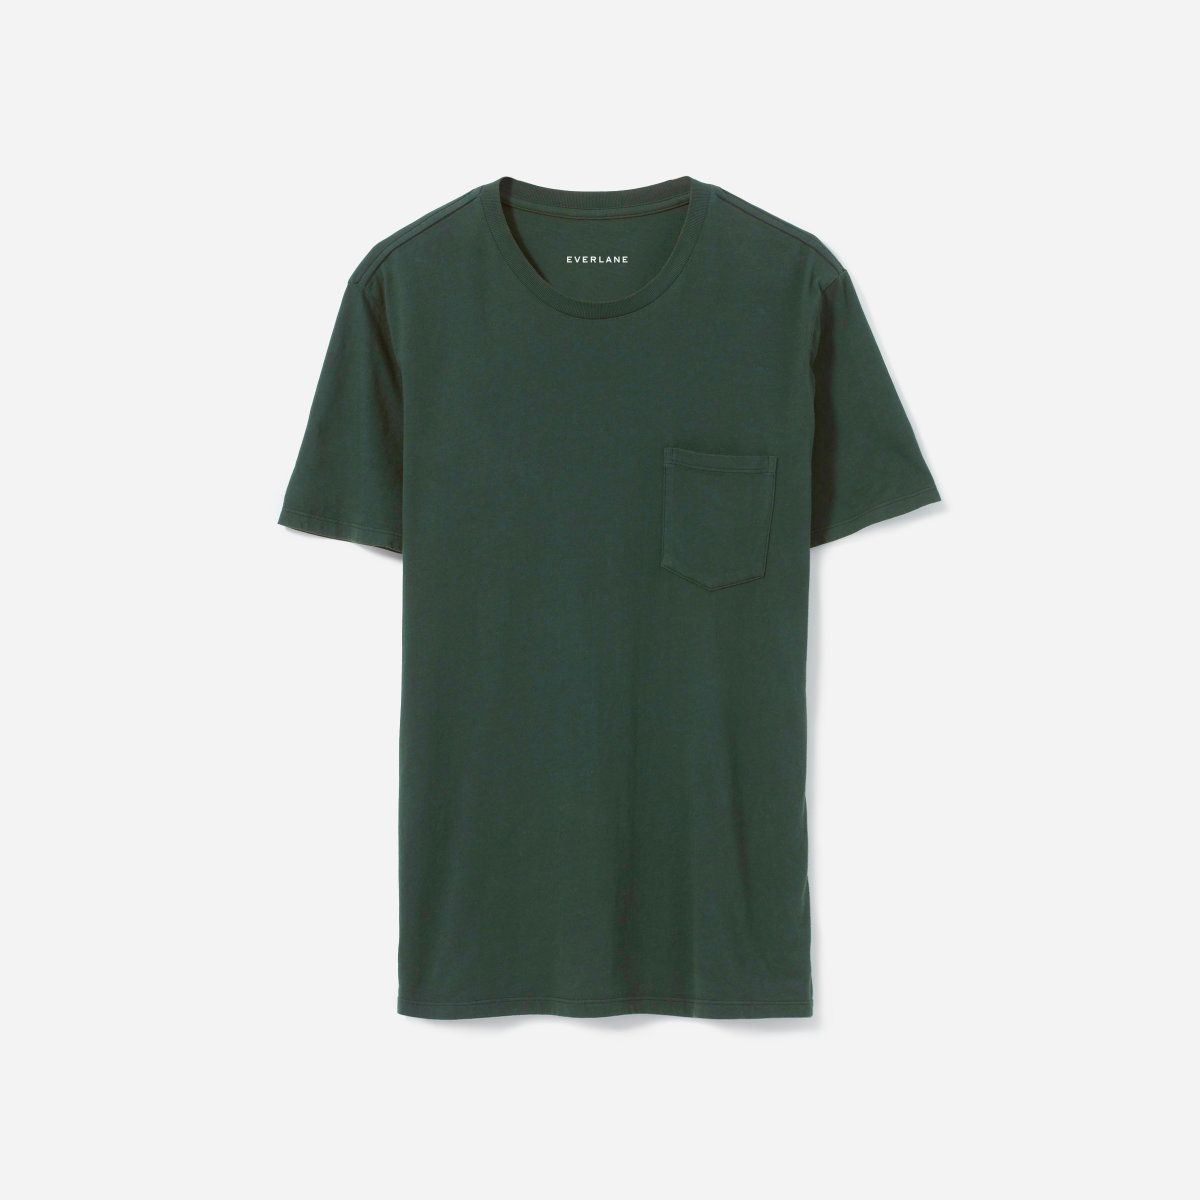 778be9c971 Men's Cotton Pocket | Everlane | Clothes in 2019 | Cotton, Pocket ...